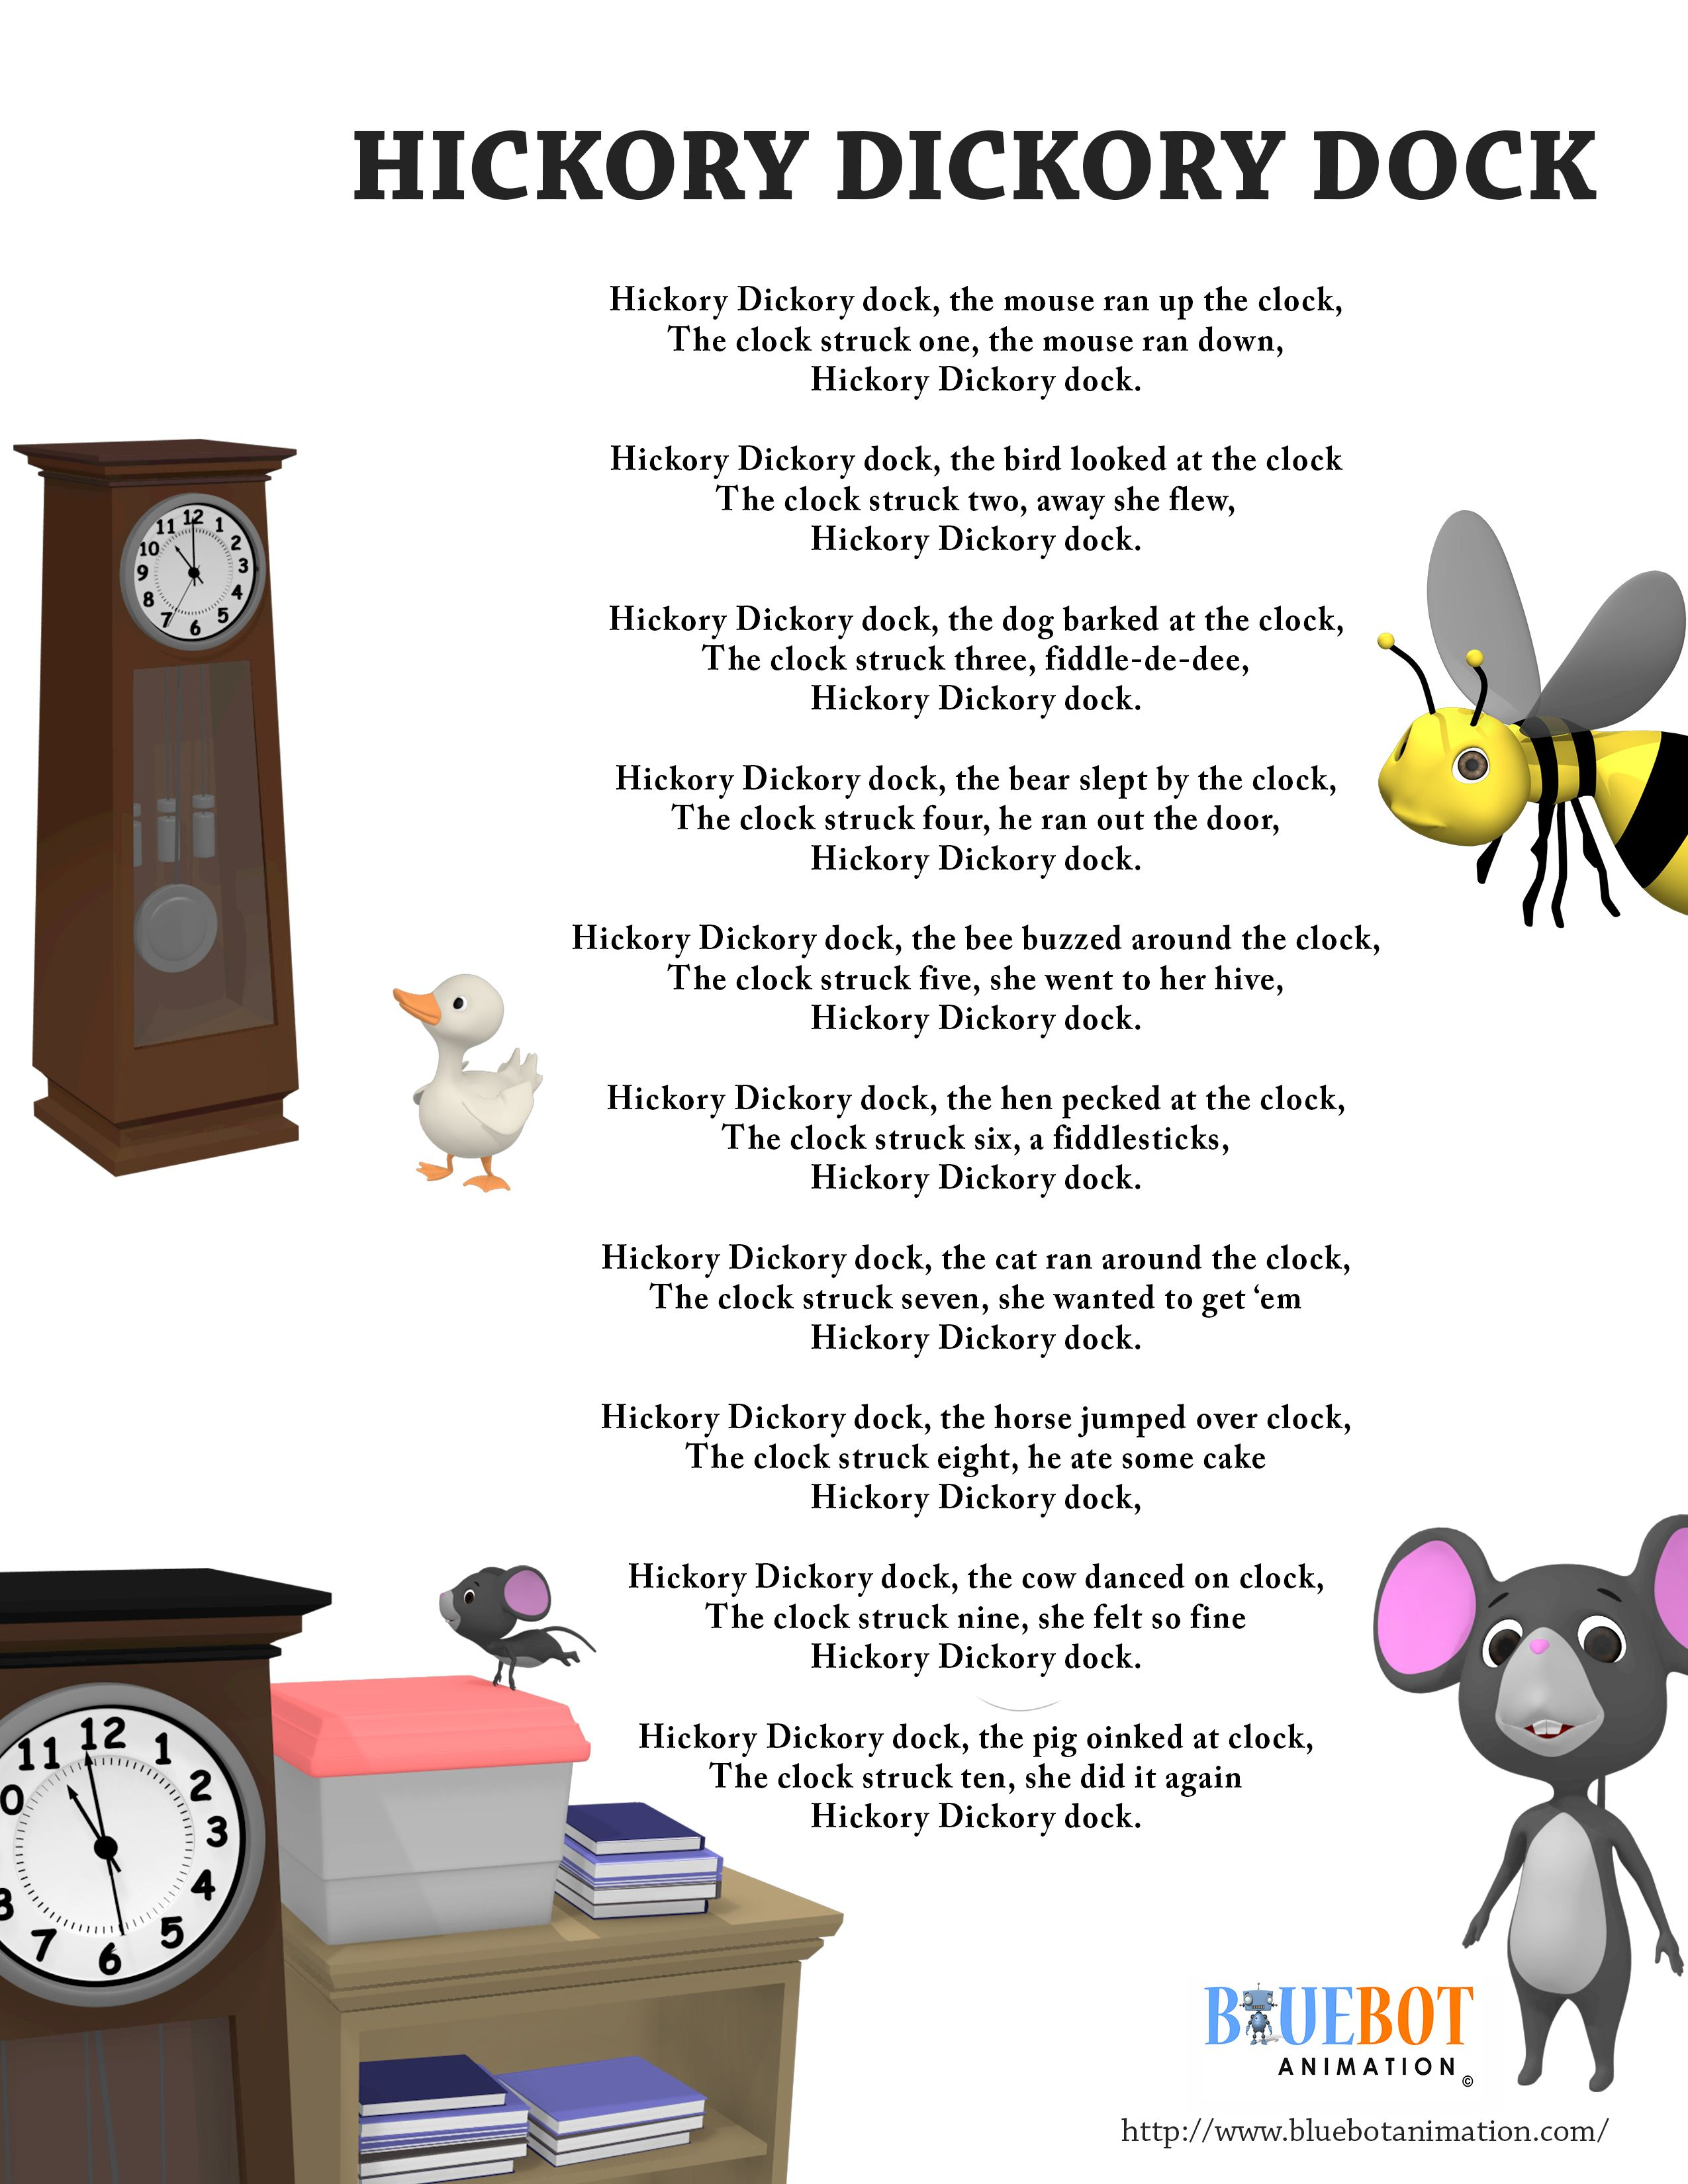 Free Printable Nursery Rhyme Lyrics Page Hickory Dickory